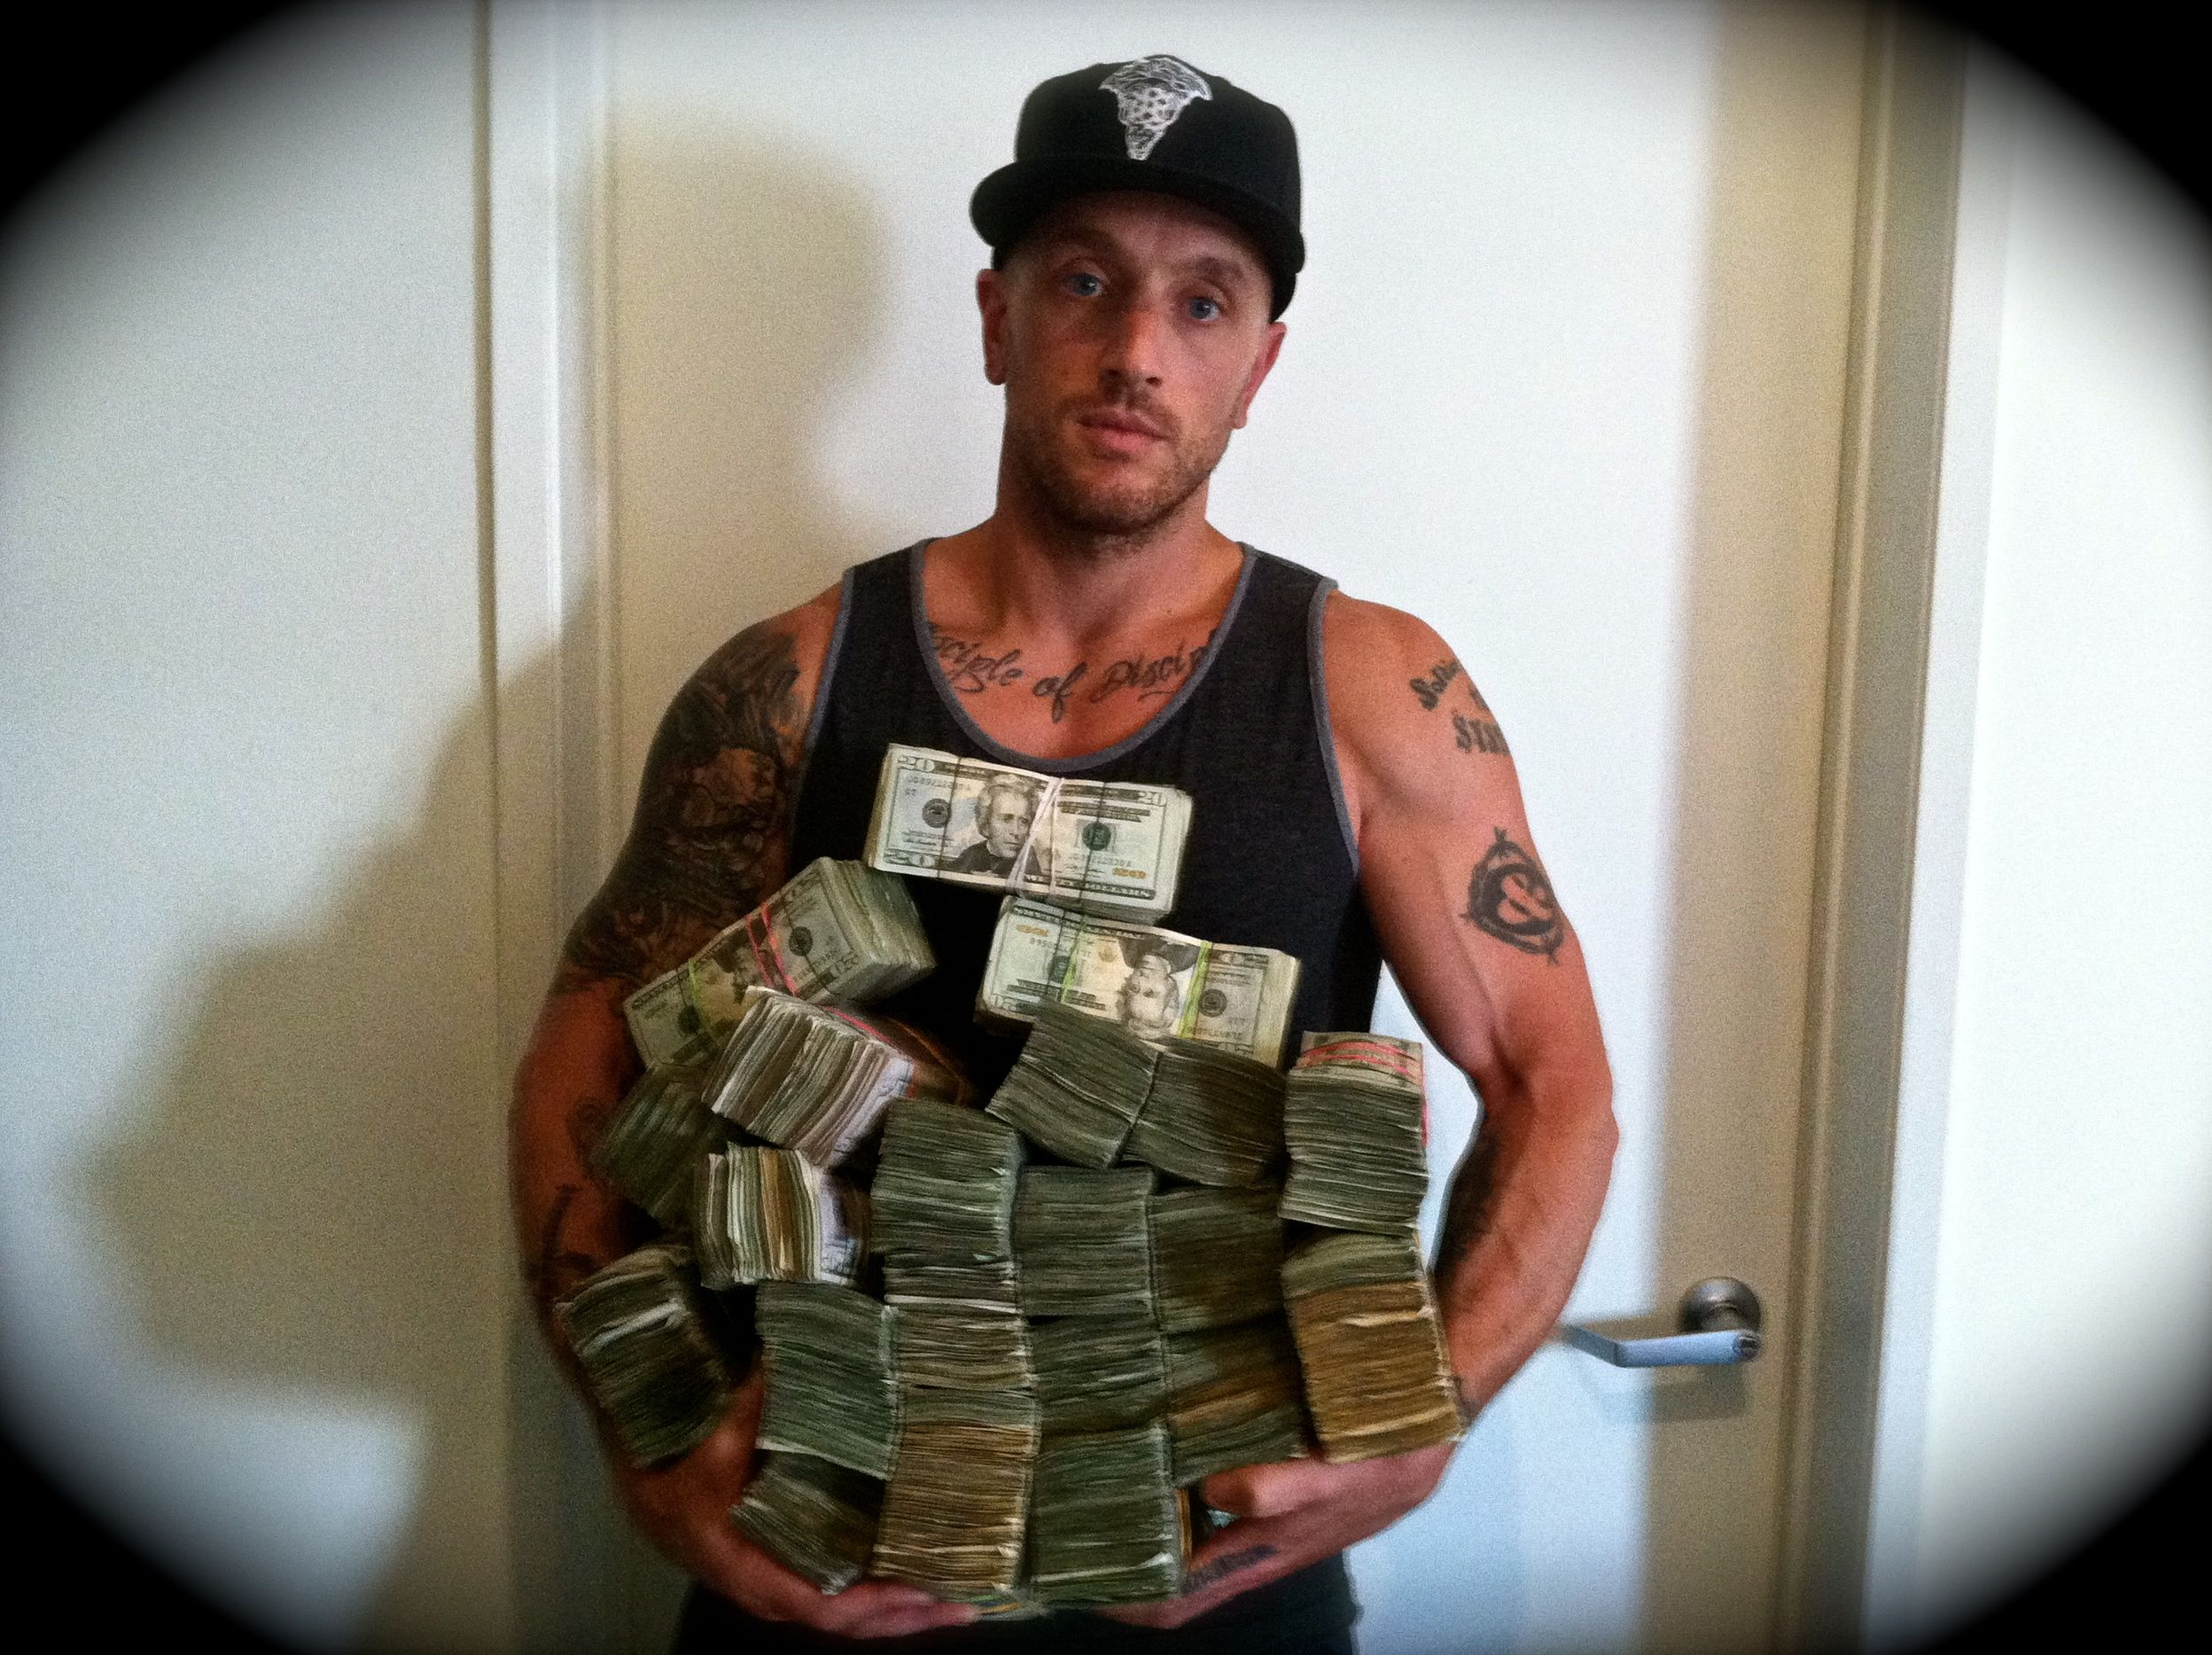 Dirty Money $300,000 All 20's / Los Angeles